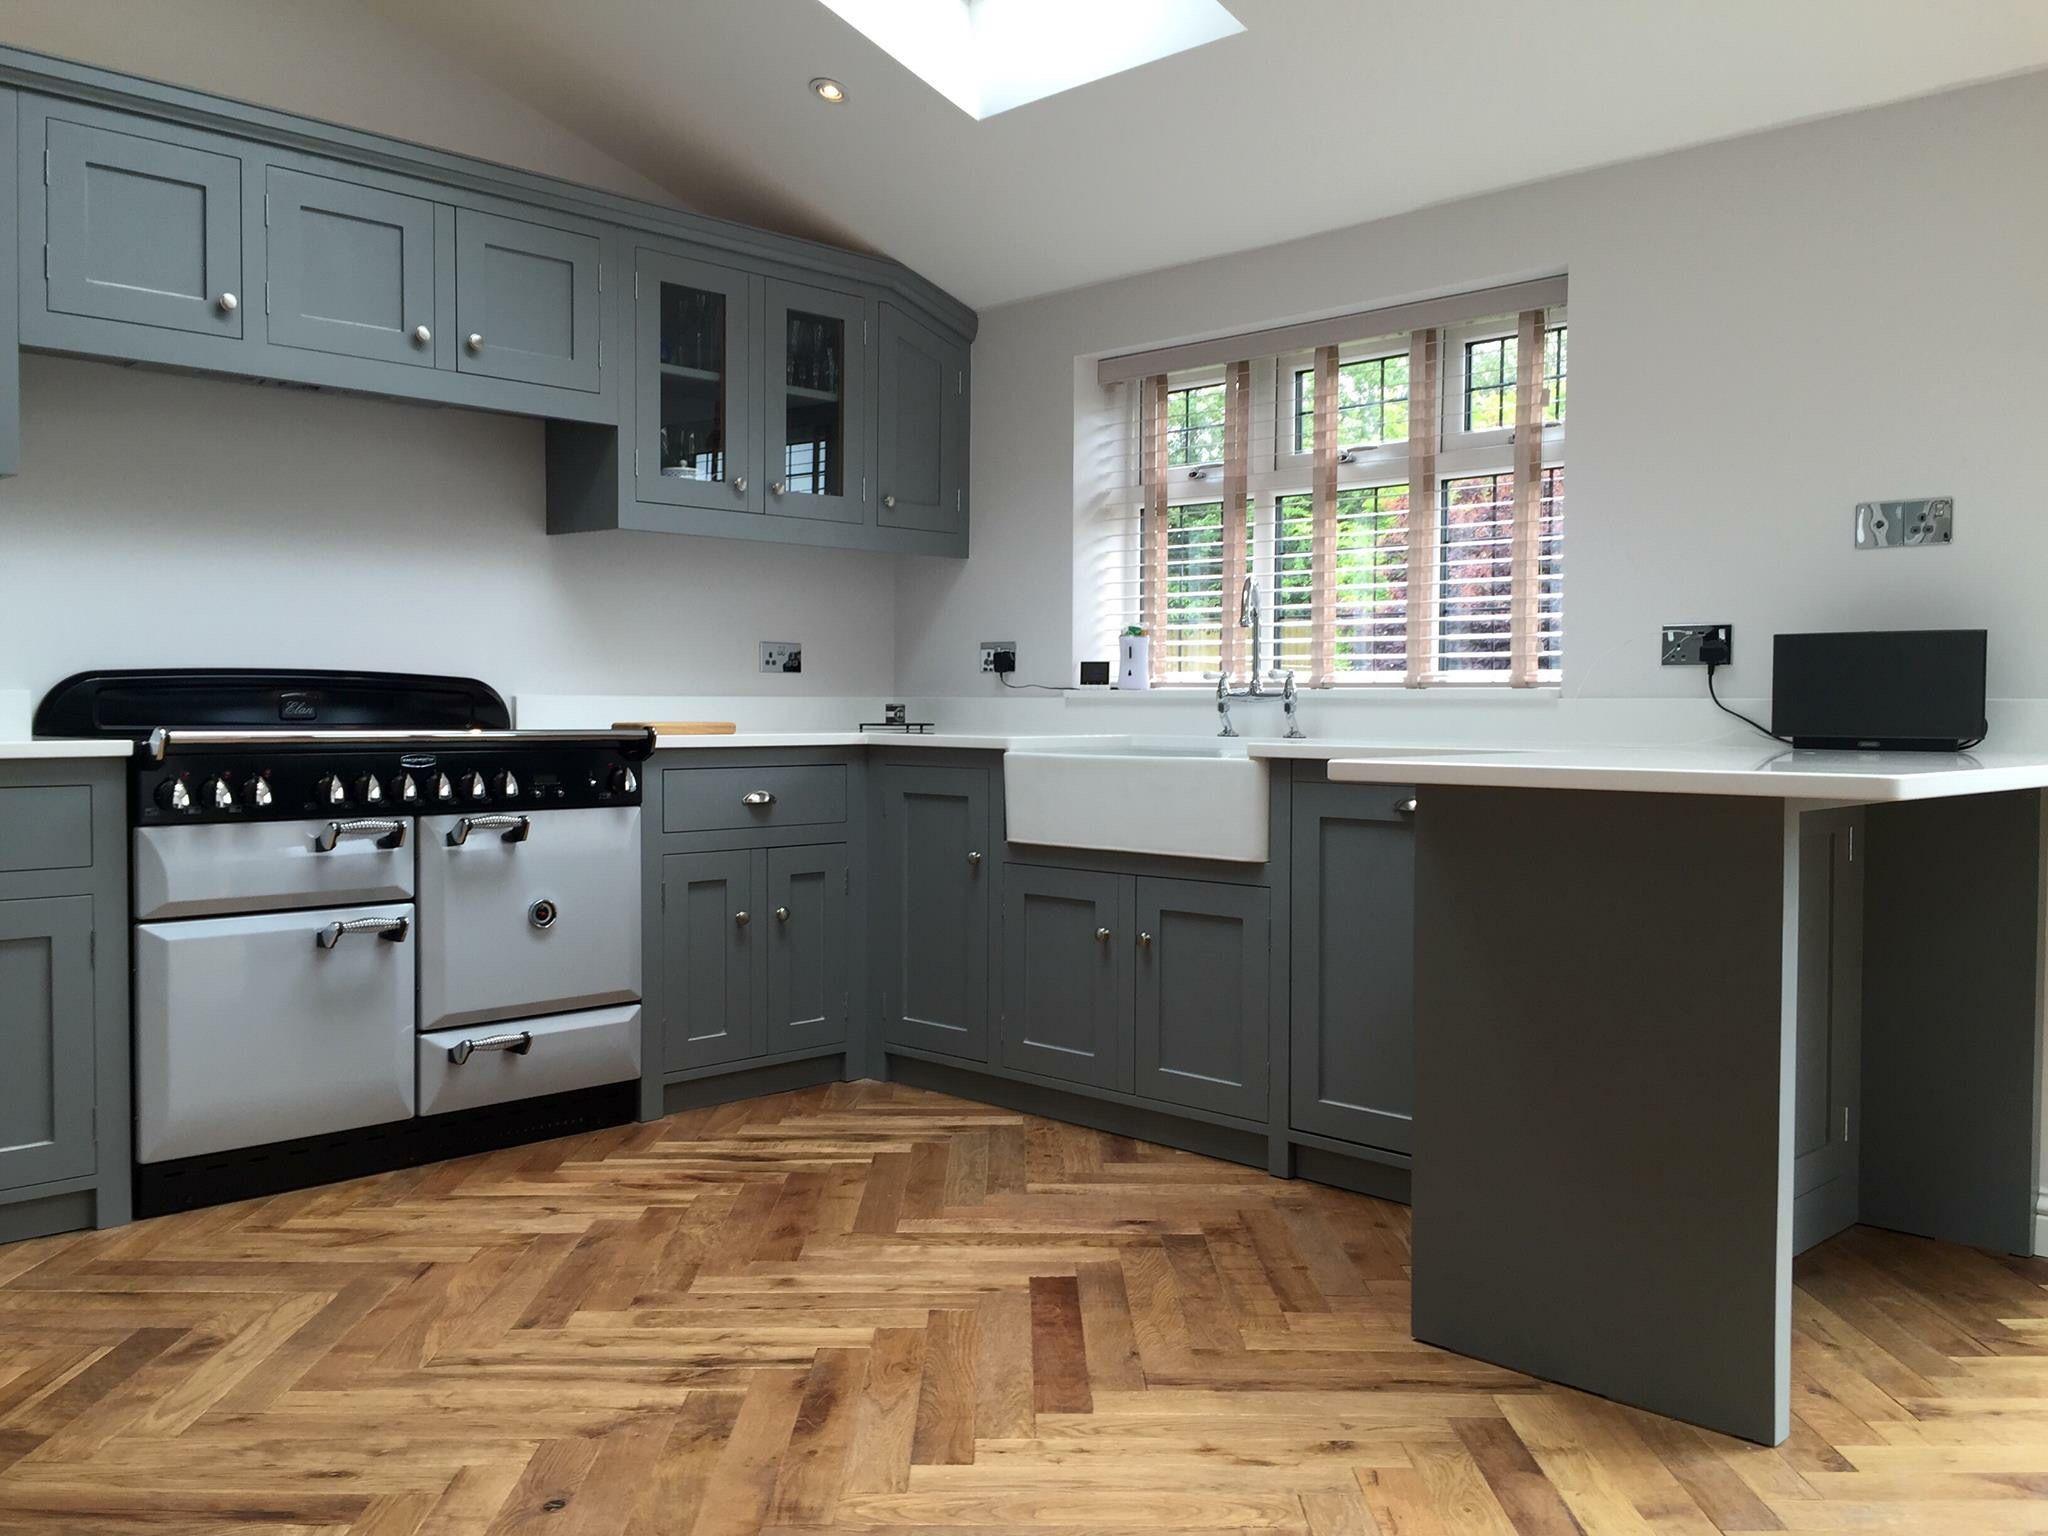 The Wonderful Plummet Handmade Bespoke Kitchens!